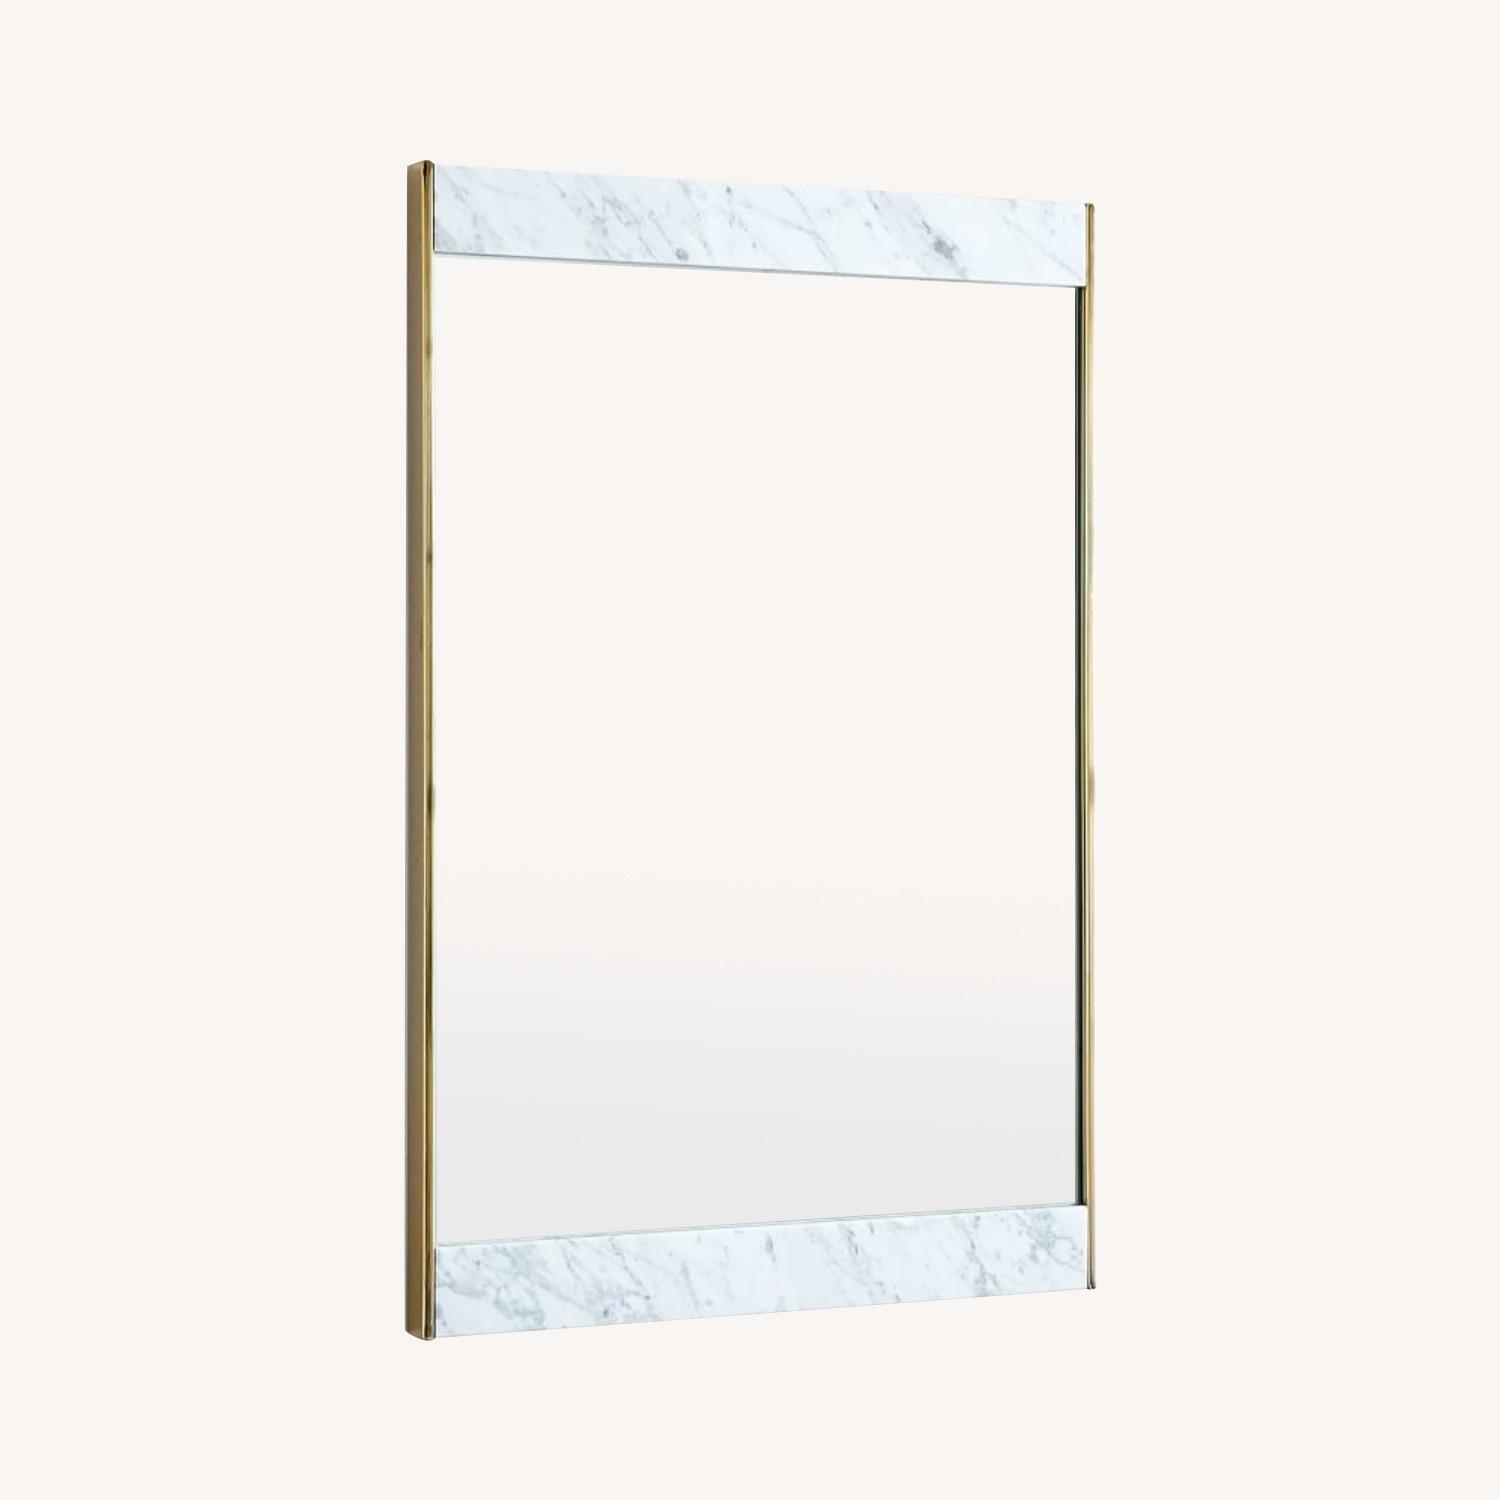 West Elm Marble and Brass Wall Mirror - image-0